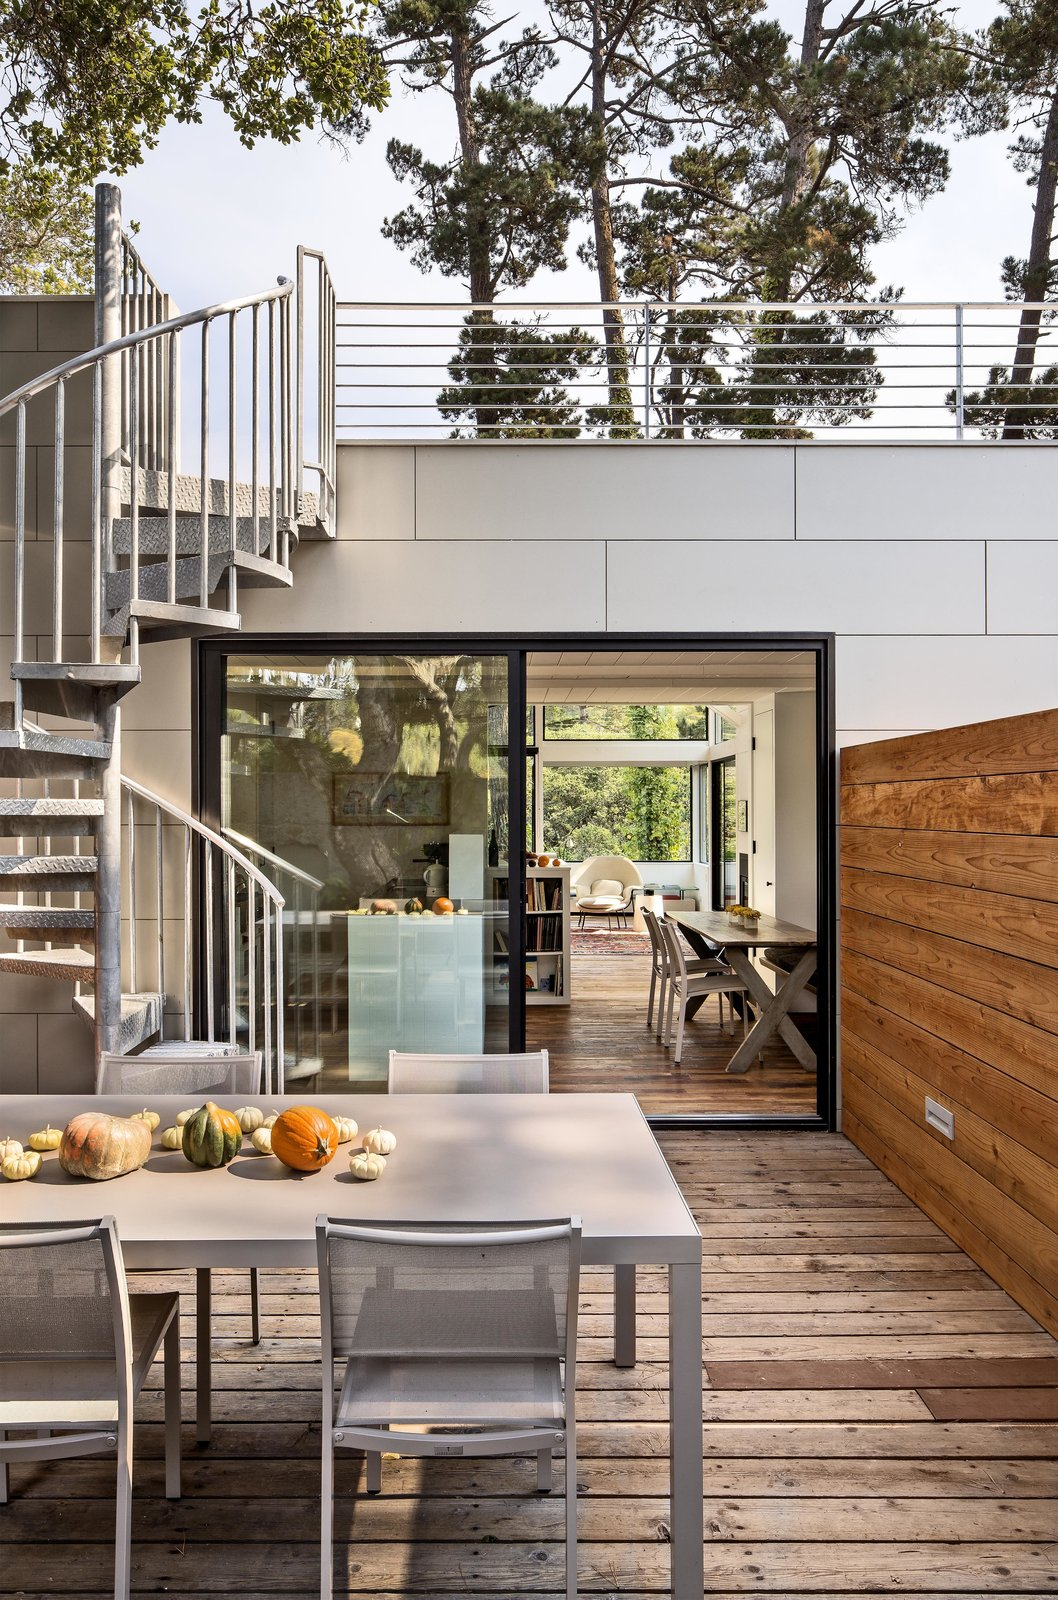 """The house is set on a forested hill, which means the backyard—though scenic—is too steep to enjoy. It's also perpetually shady. Schicketanz wanted somewhere she could soak in the sun, so she added a roof deck. """"It's really the only usable, large outdoor space I have,"""" she says.  Photo 7 of 11 in Take it Outside With These 11 Spring-Friendly Deck Spaces from Torres House"""